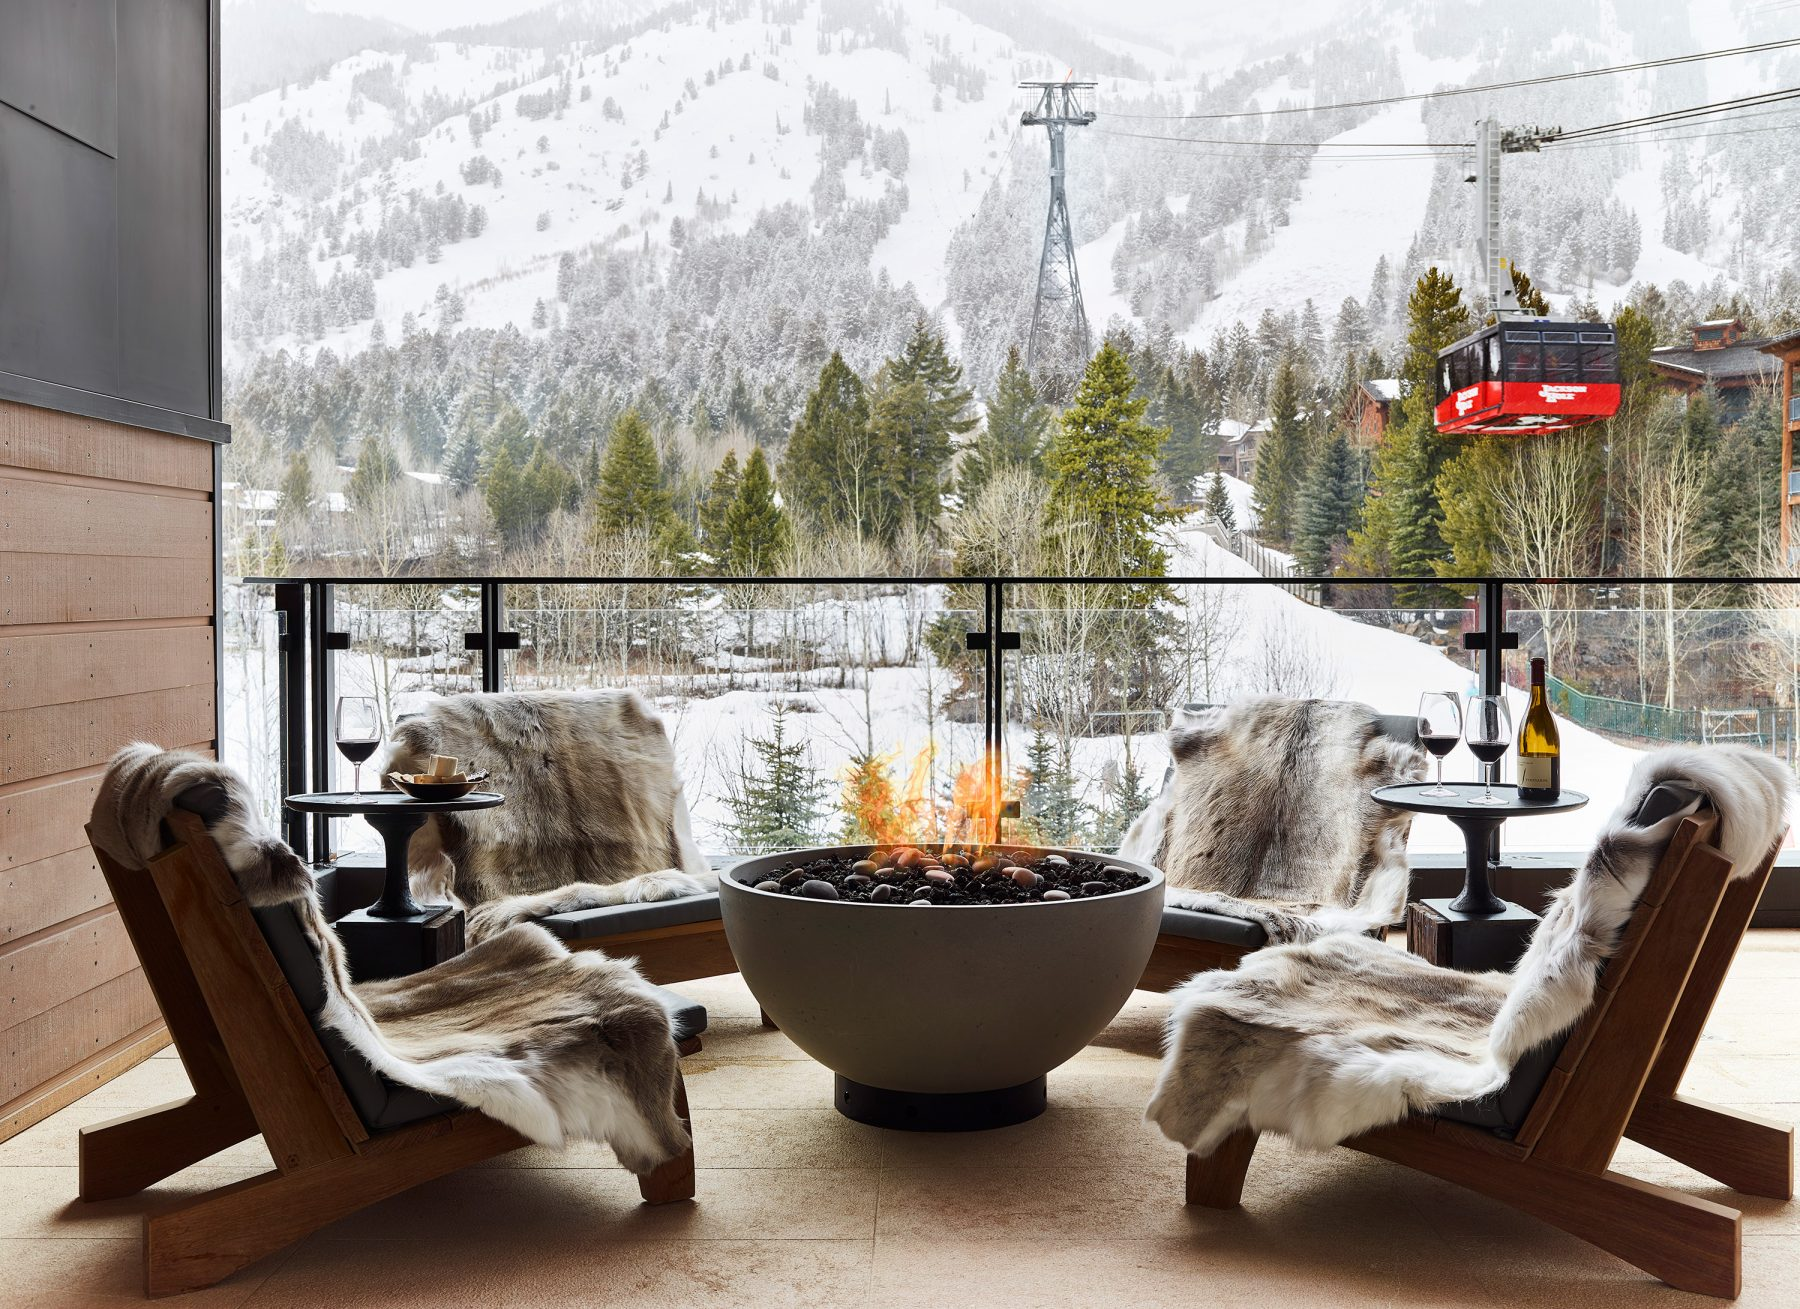 Newberry suite - outdoor patio overlooking ski lift